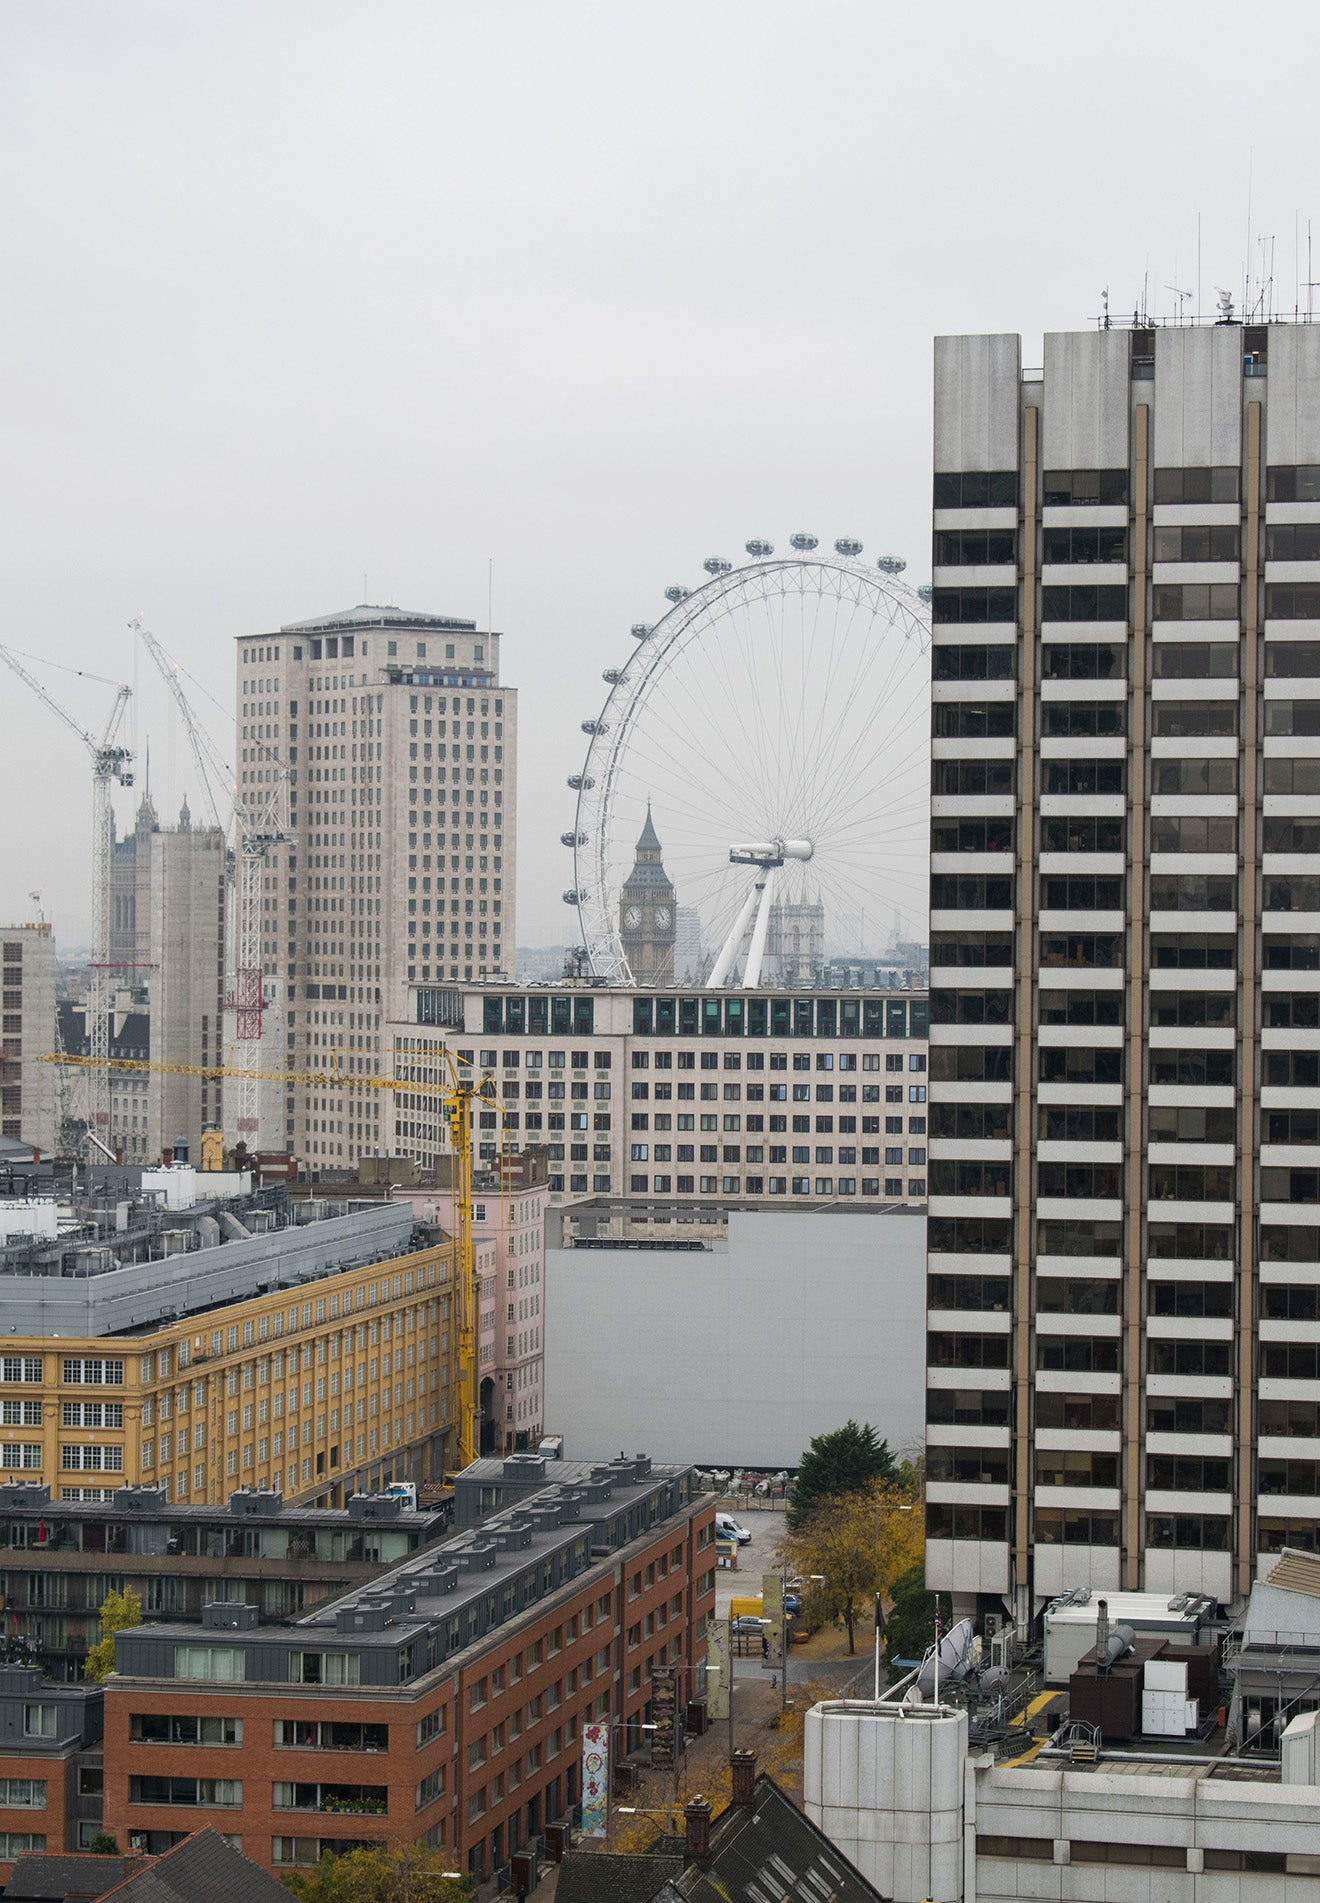 Views across London including the London Eye and Big Ben from the OXO Tower